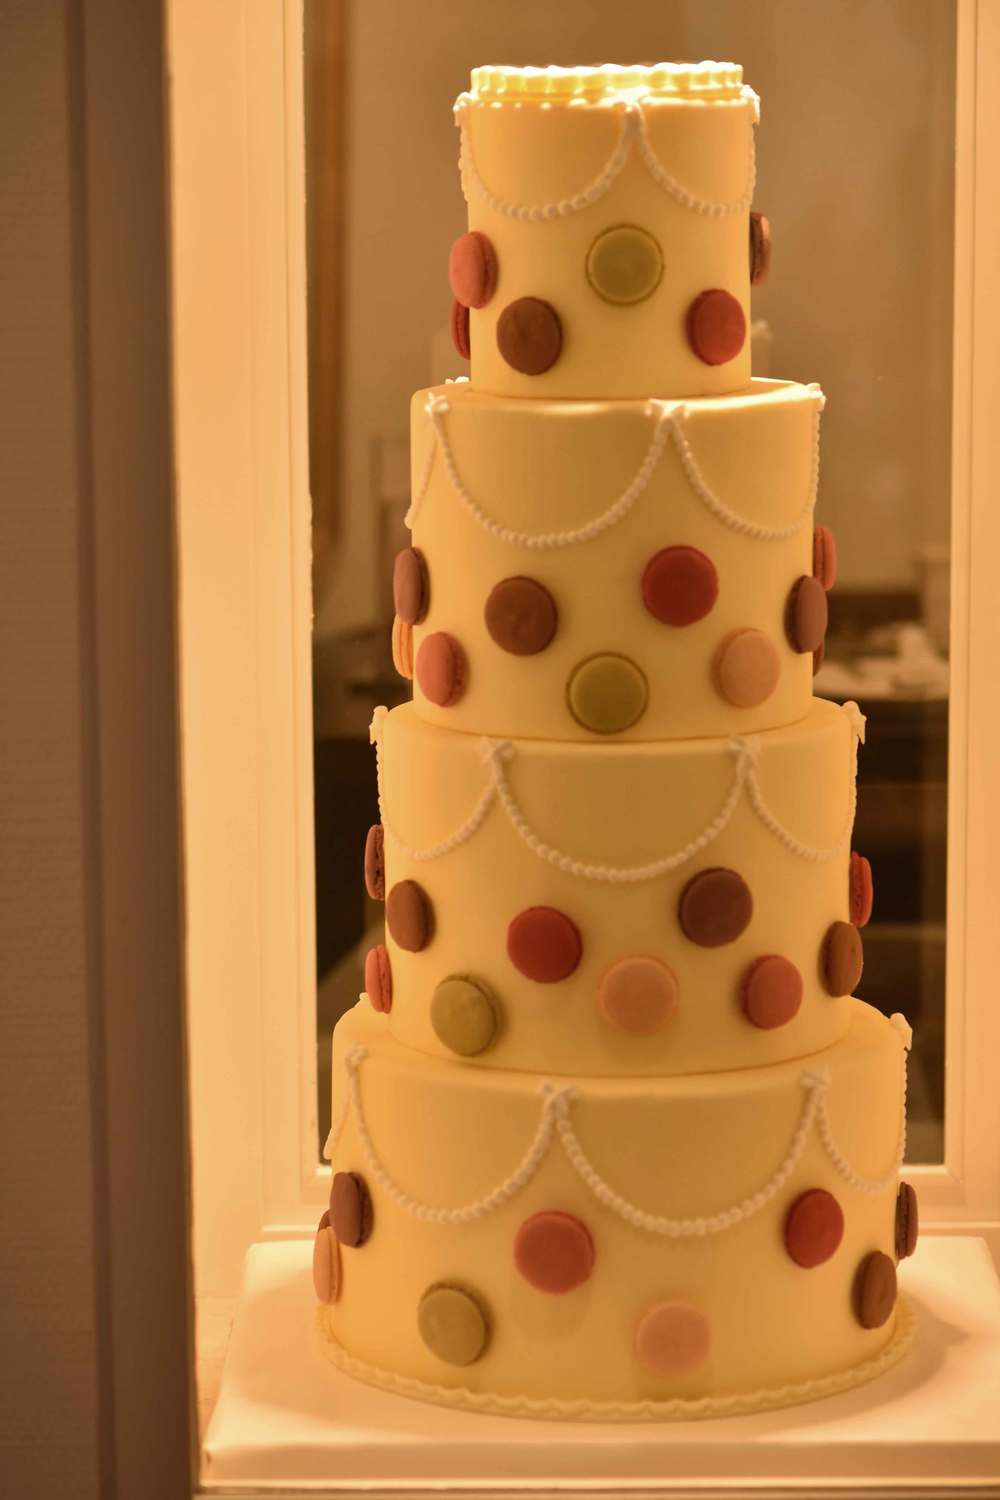 4 storey cake at Cafe König, Baden Baden, Germany. Image©sourcingstyle.com